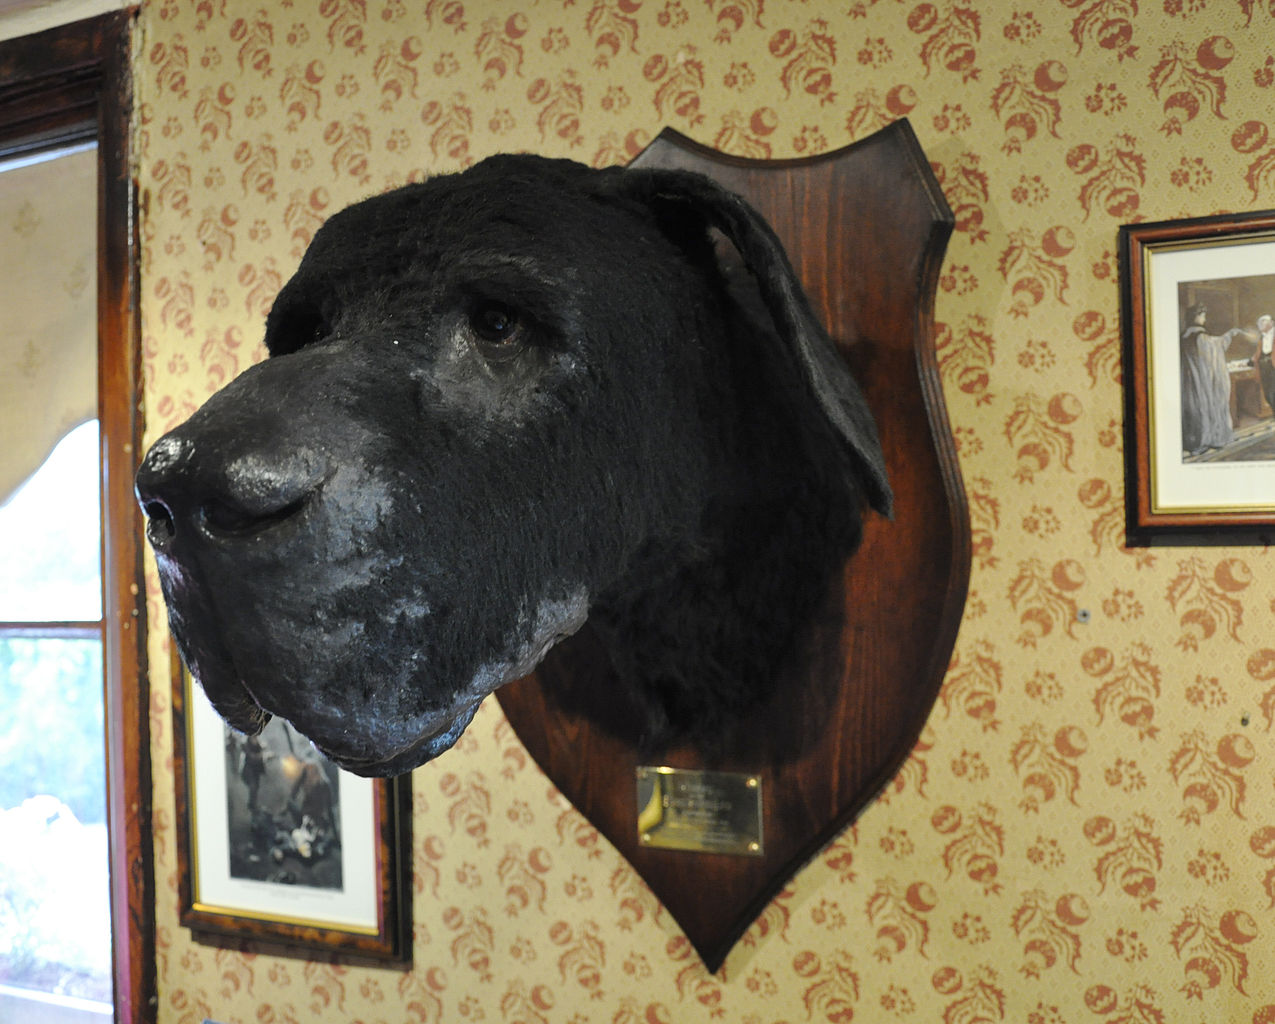 filesherlock holmes museum the hound of the baskervilles